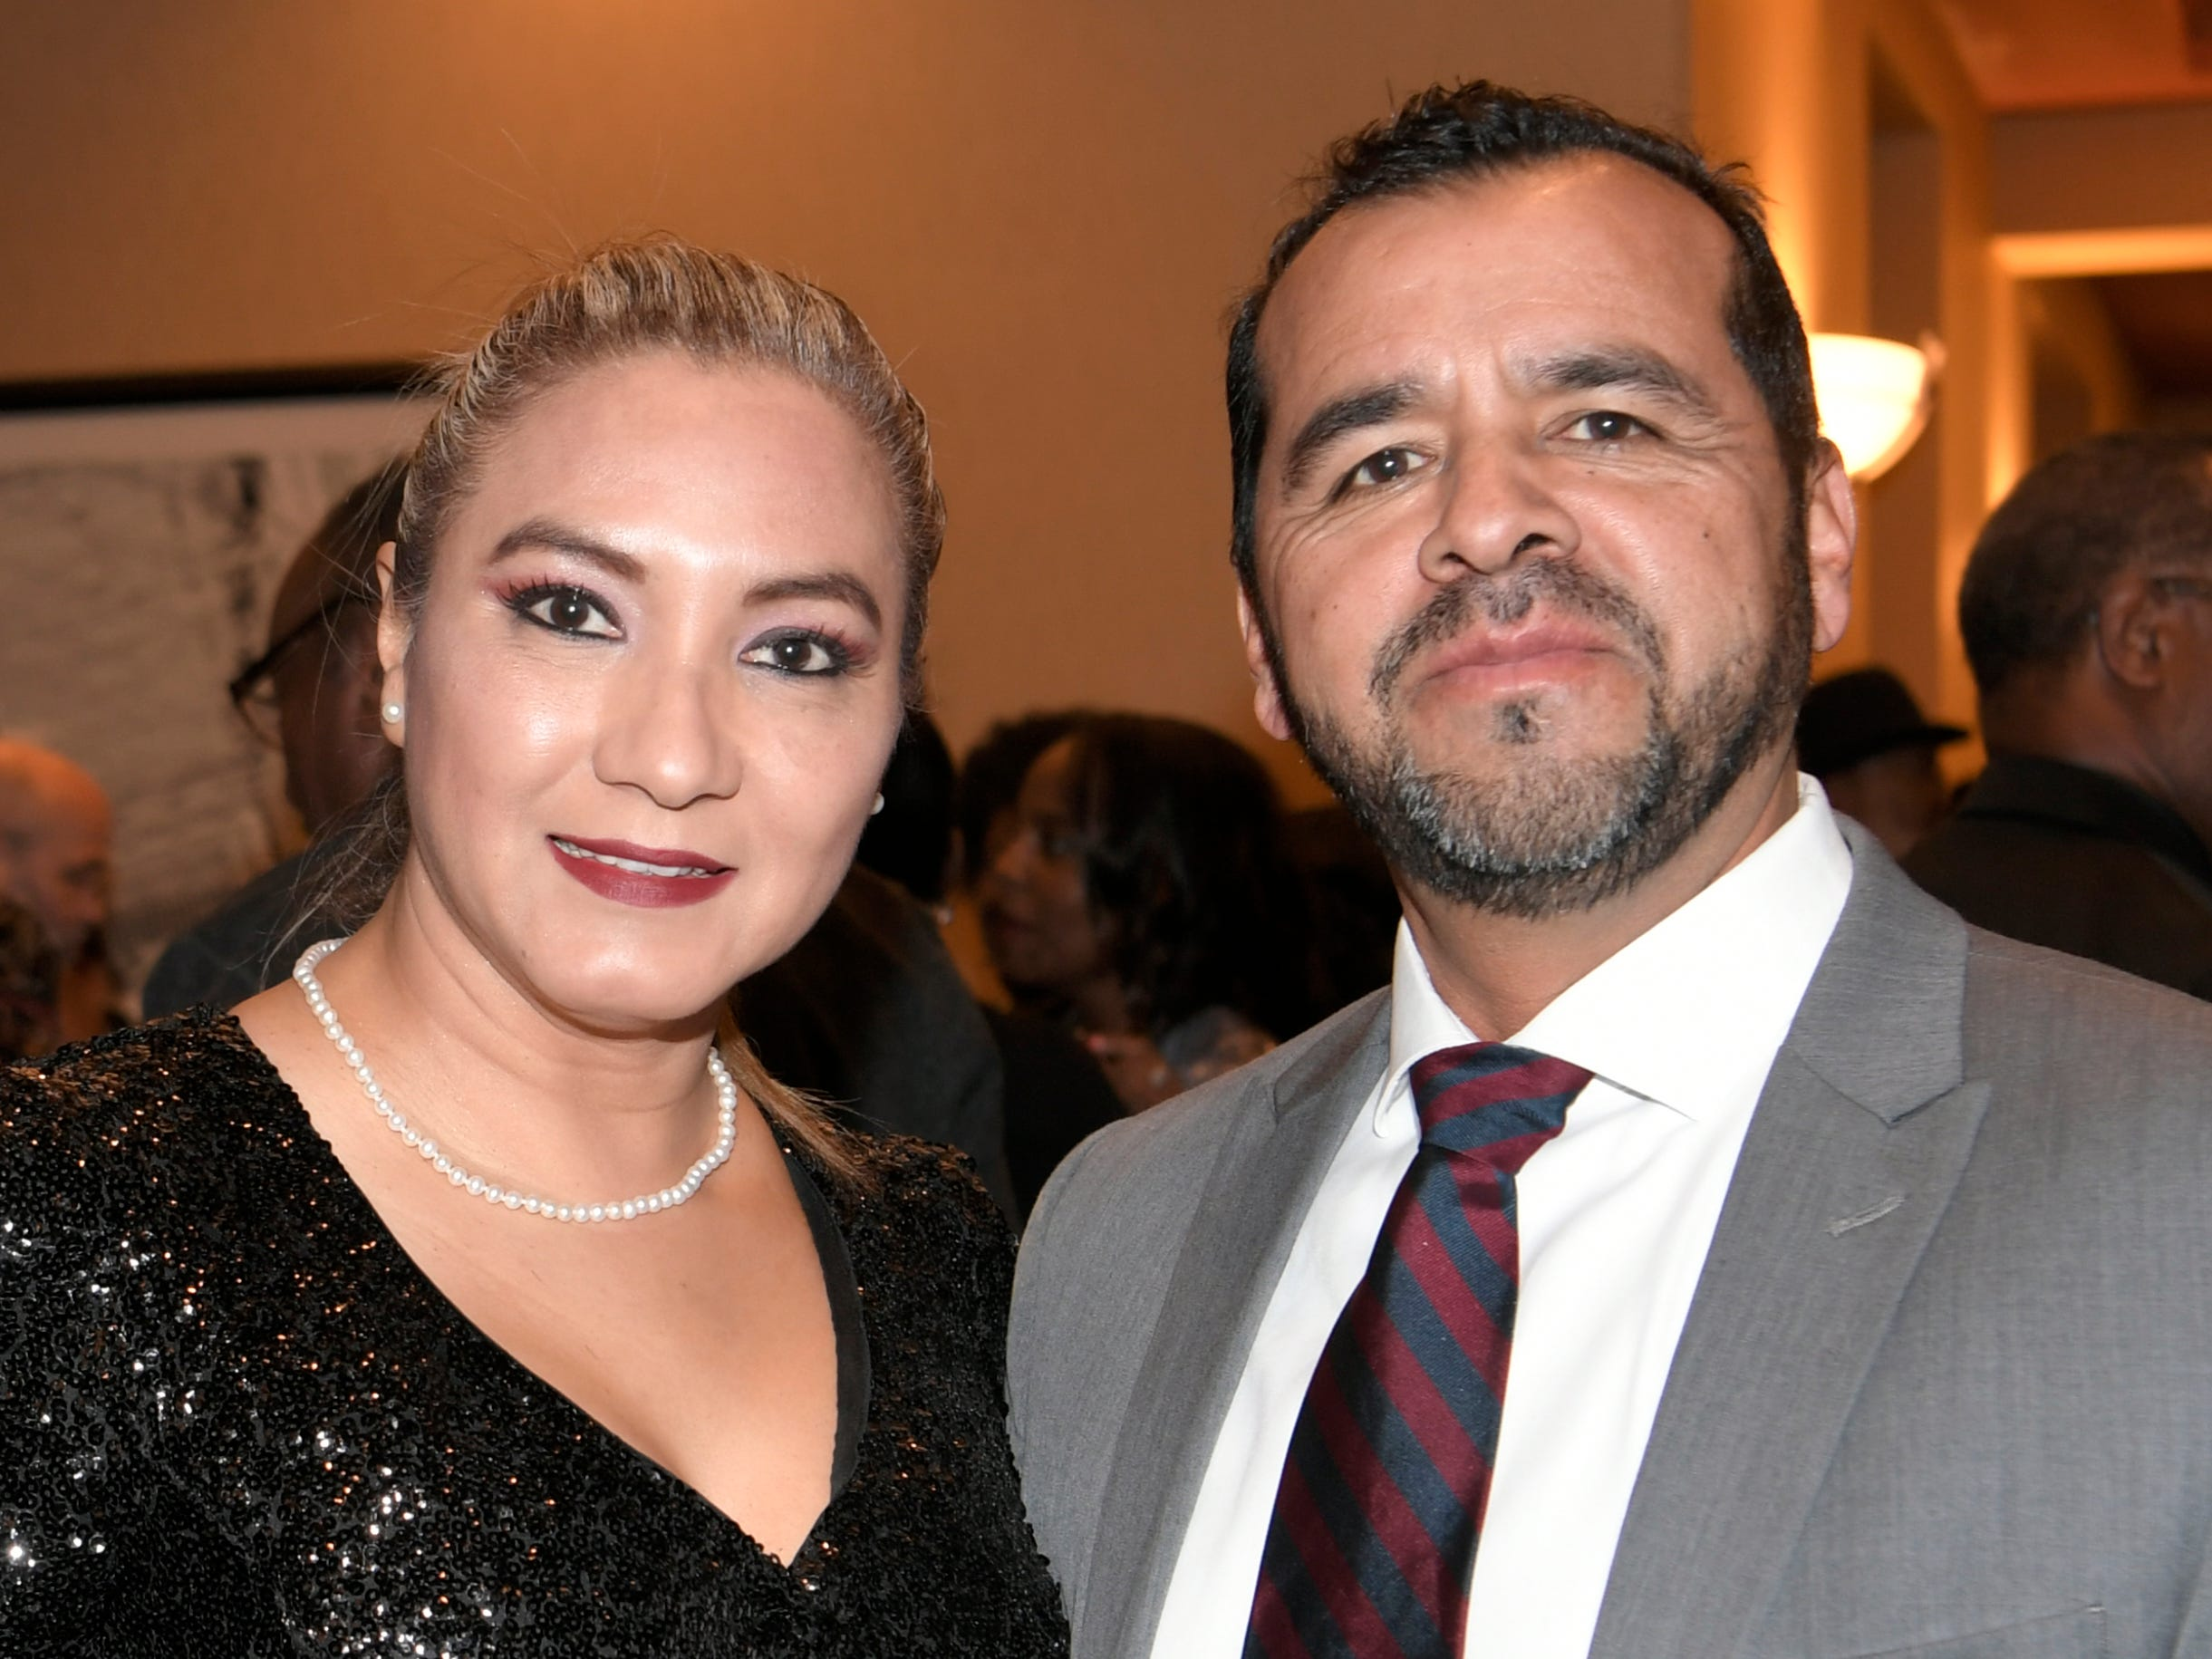 Ana and Louis Sura at the African American Heritage Society's 18th Annual Black Tie Affair at the Embassy Suites in Franklin on Sat., Feb. 2, 2019.